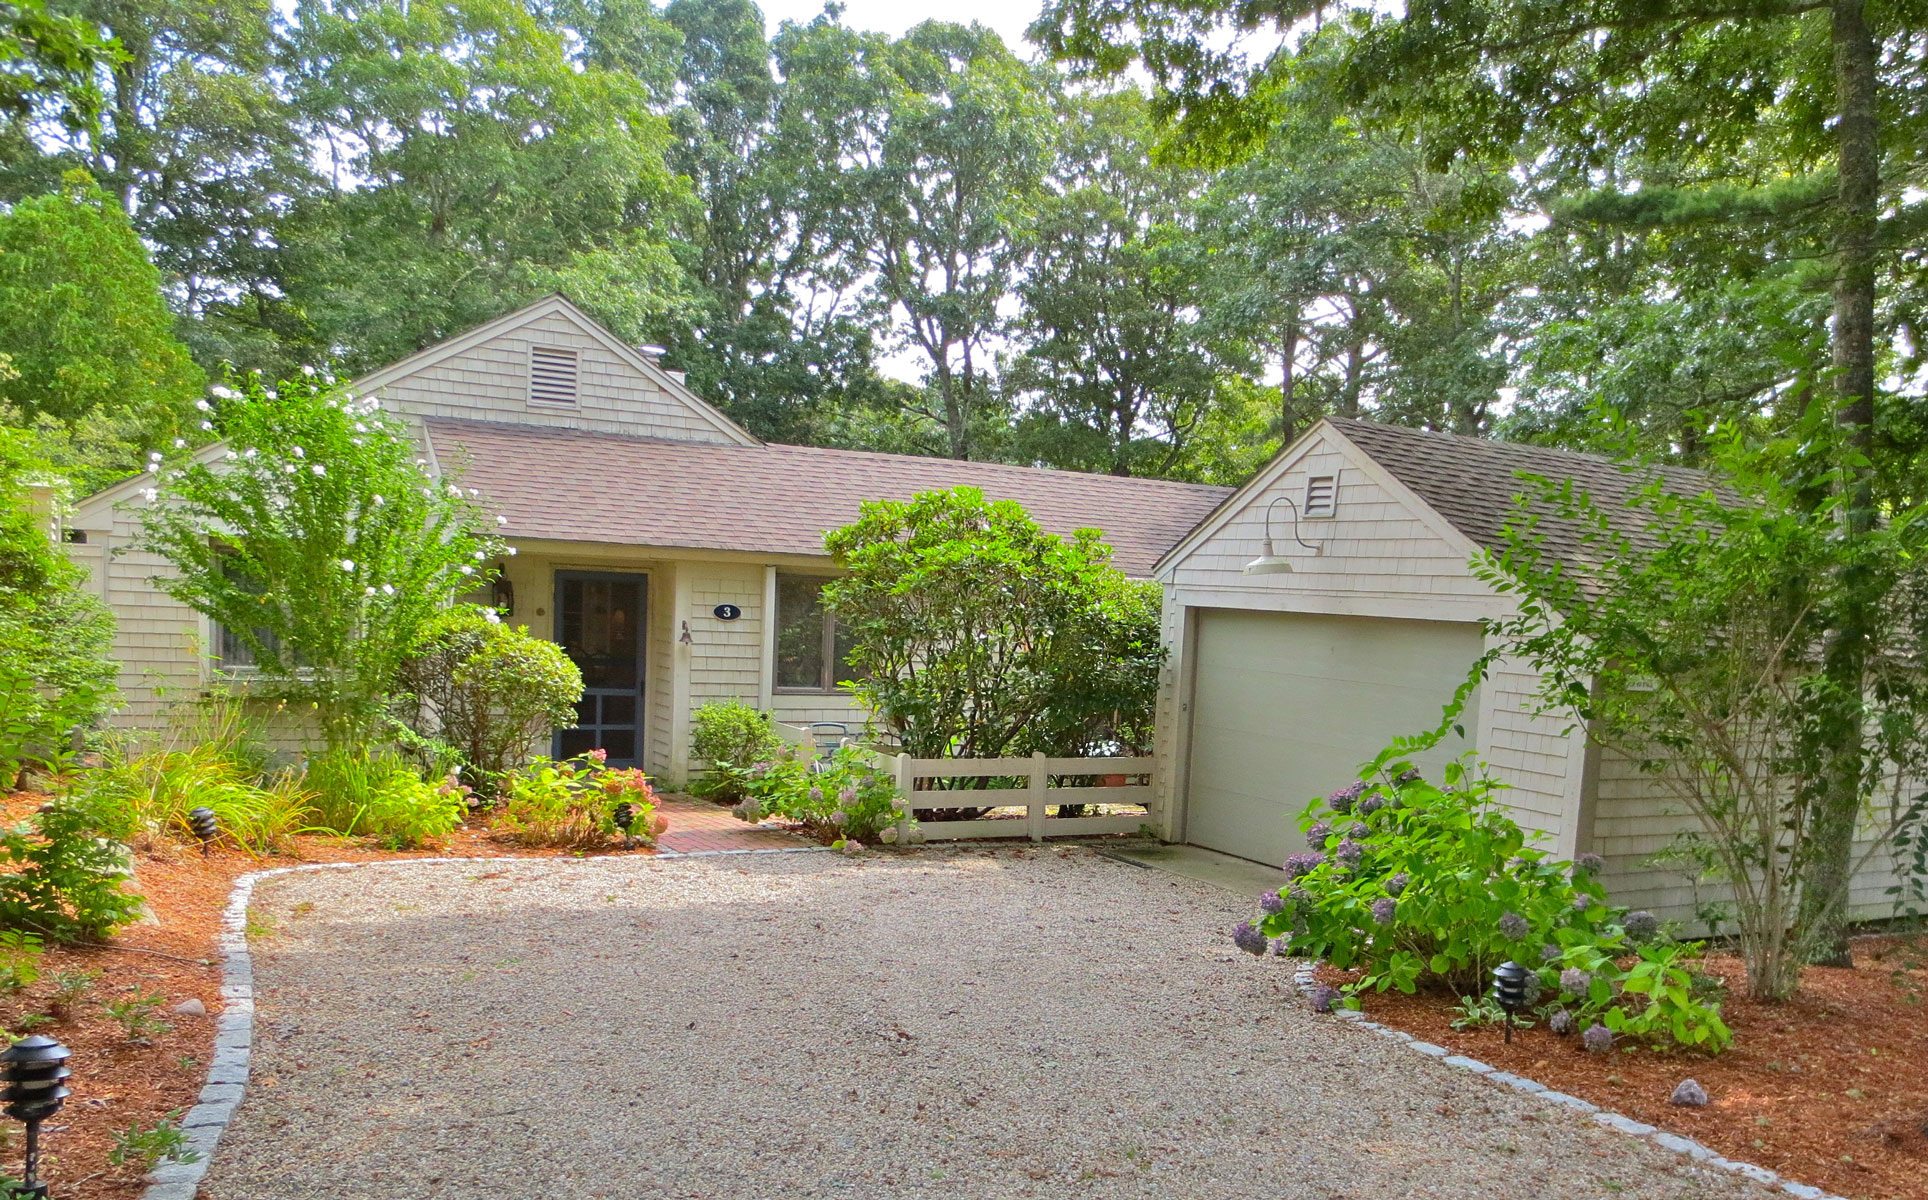 Single Family Home for Sale at 1 LEVEL LIVING IN DESIRABLE MEWS PATIO HOME WITH POOL 3 Mashie Circle New Seabury, Massachusetts, 02649 United StatesIn/Around: Mashpee